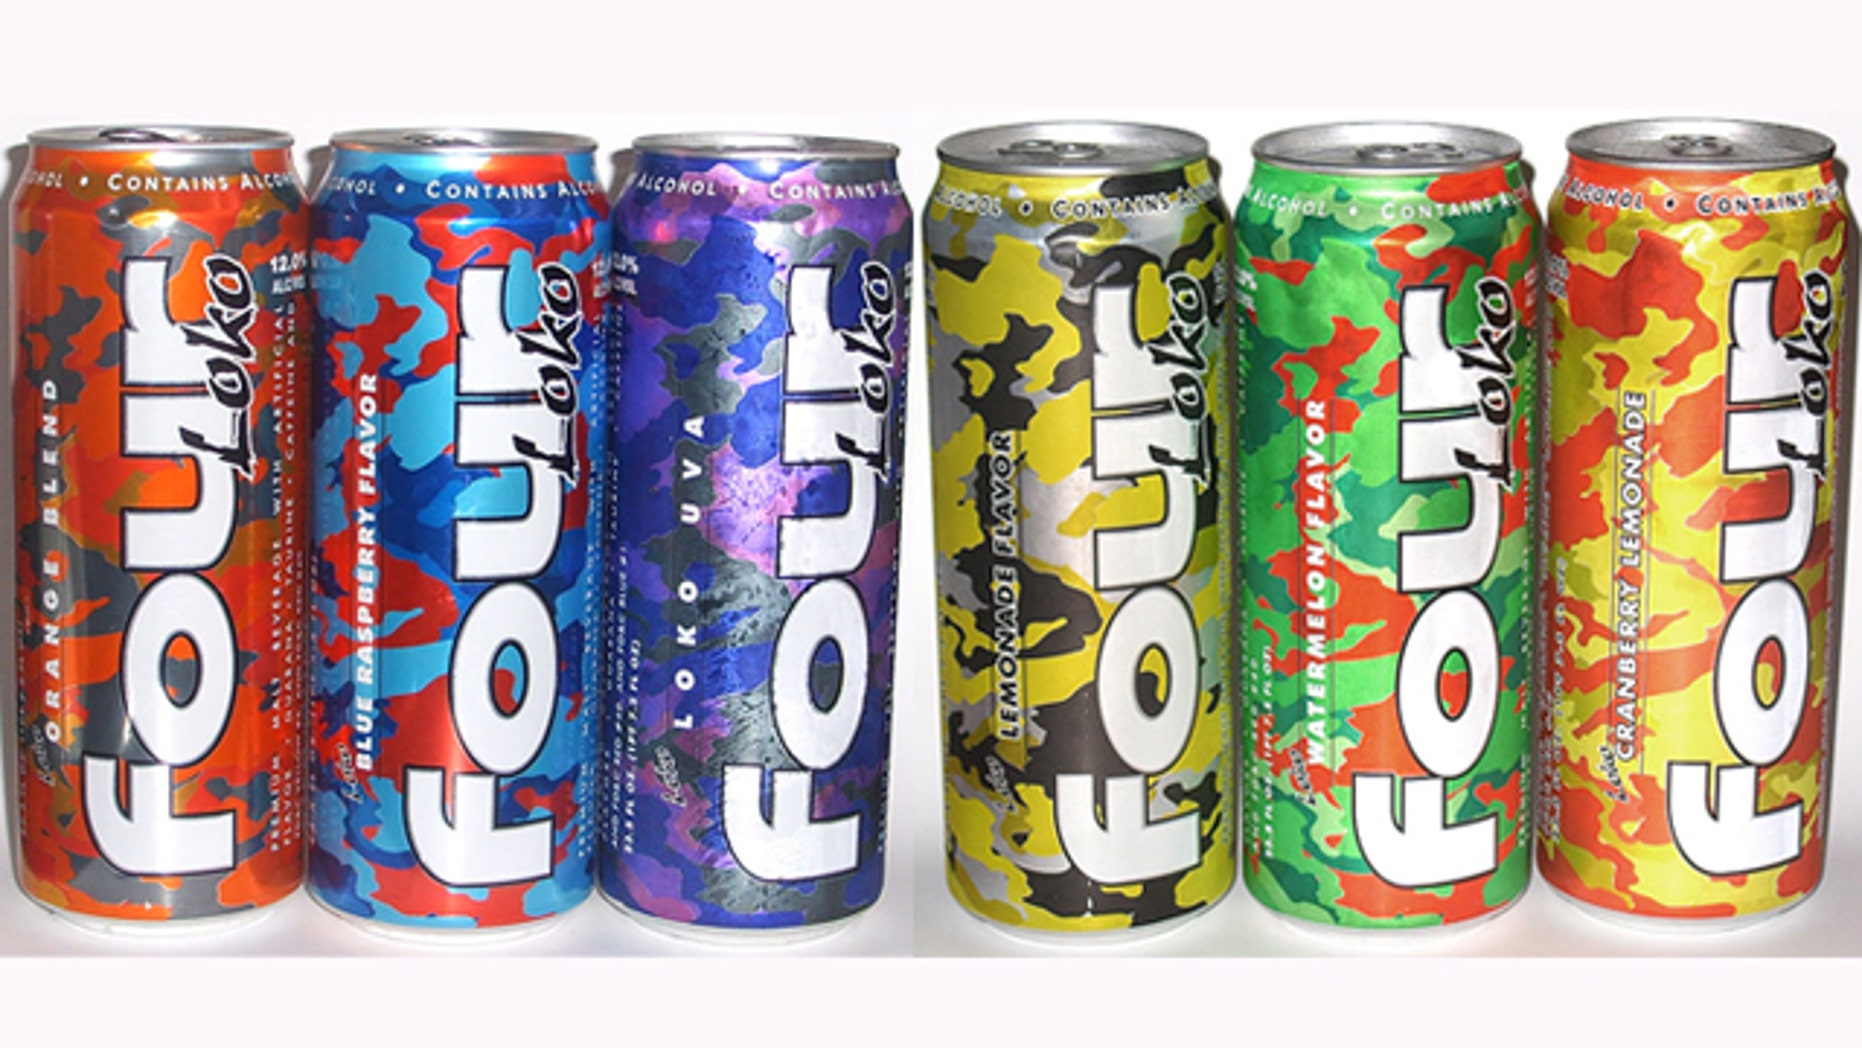 Image result for Four Loko